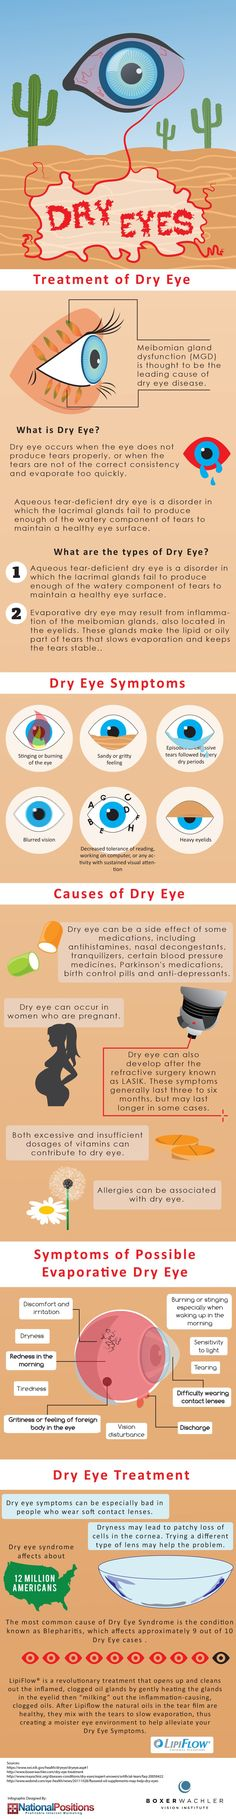 Treatment for Dry Eyes  L'Optique Optometry  Rochester Hills, MI  248.656.5055  www.loptiqueoptometry.com